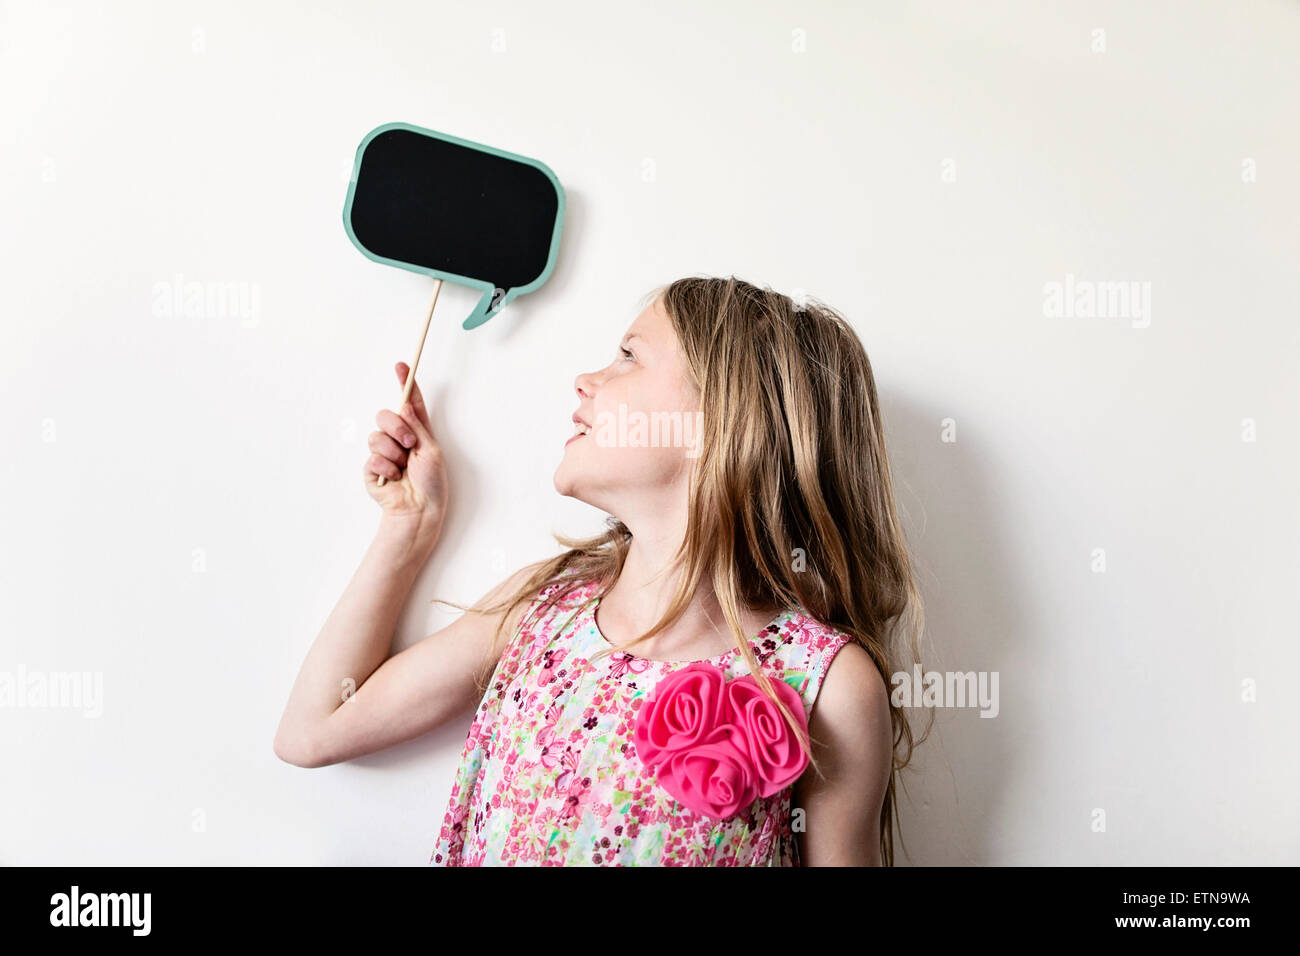 Portrait of a happy girl holding a blank thought bubble board above her head - Stock Image